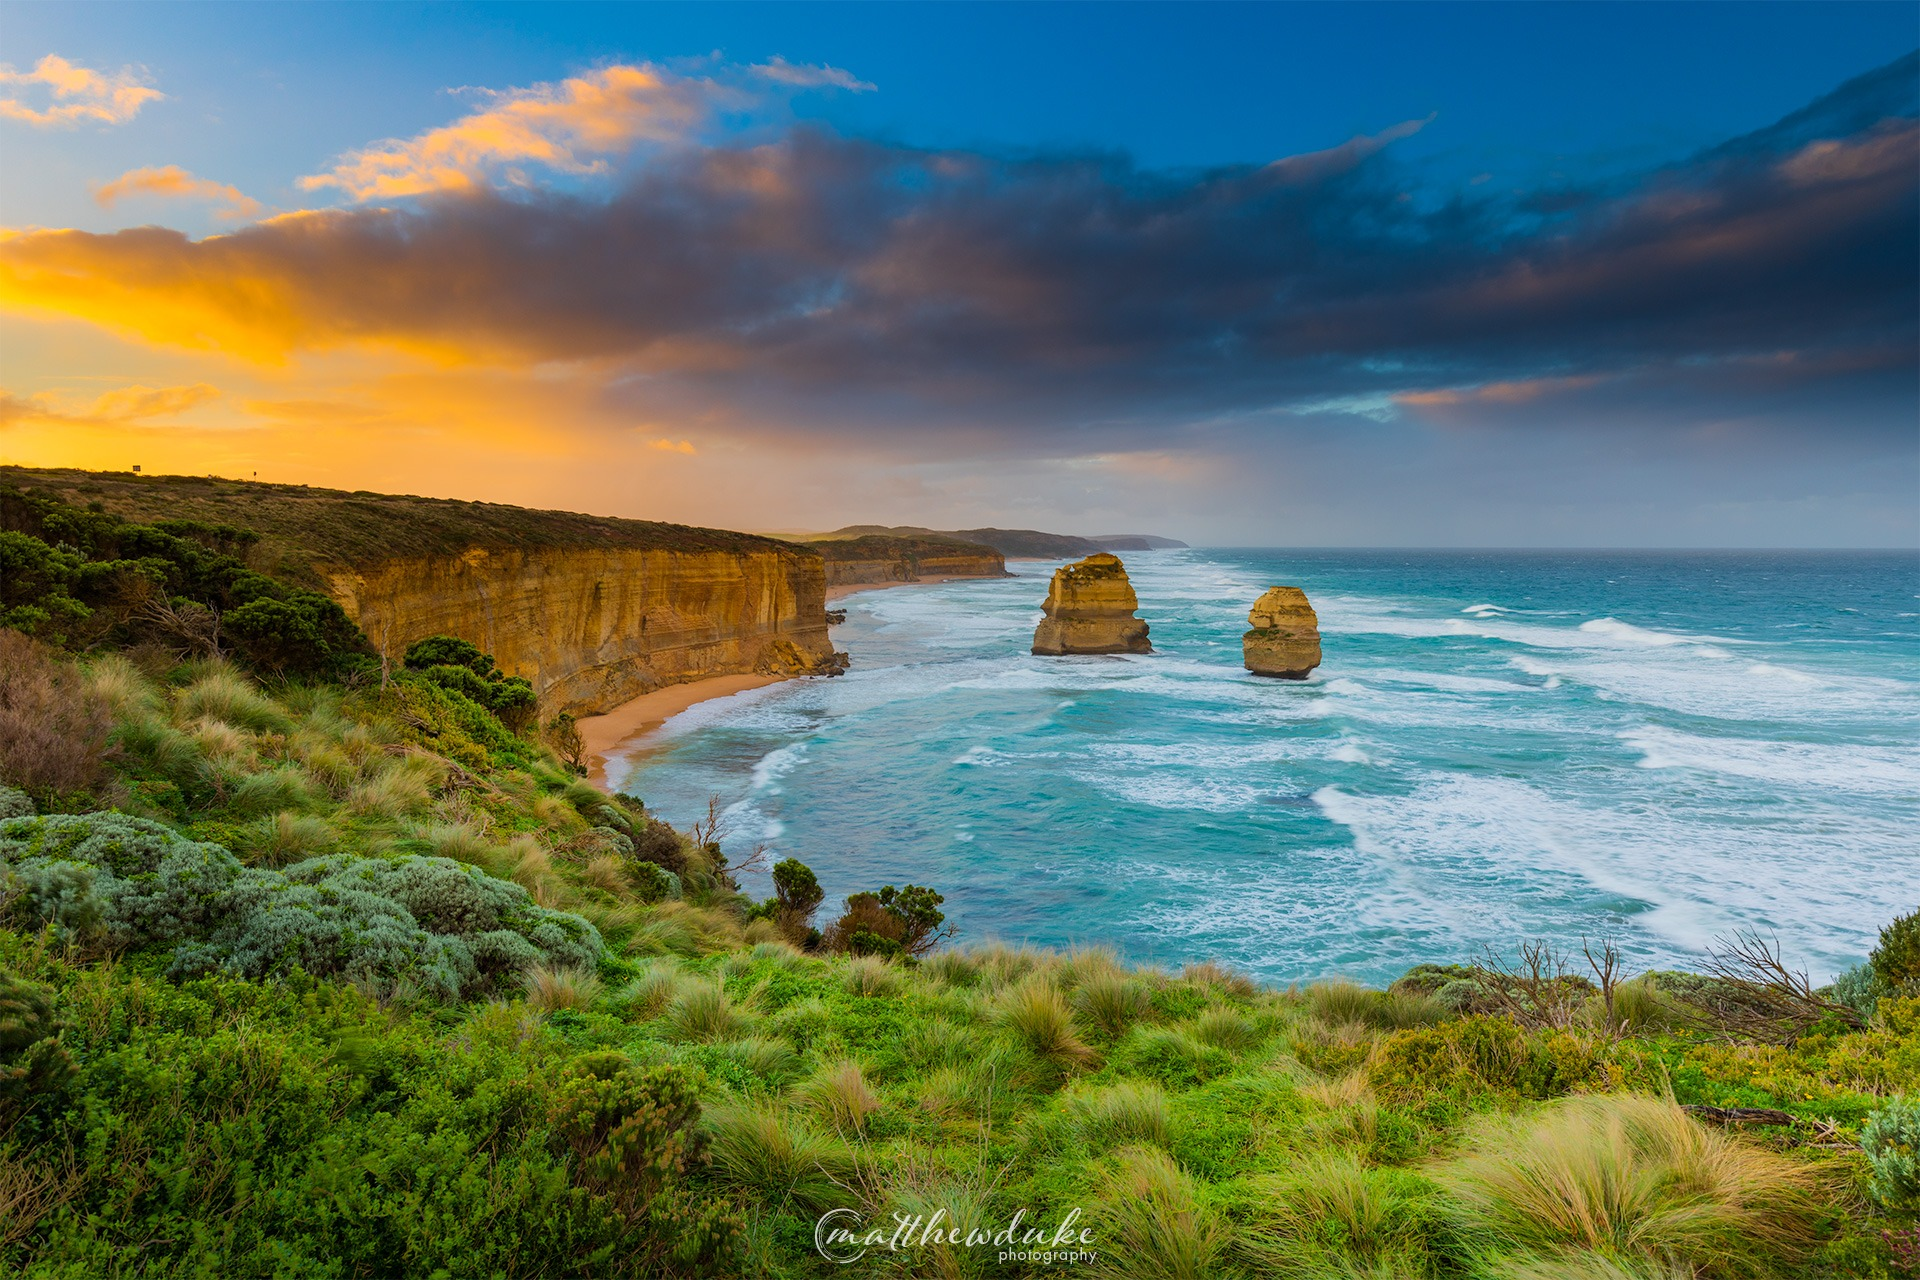 Sunrise at the 12 Apostles Great Ocean Road stunning landscape photograph